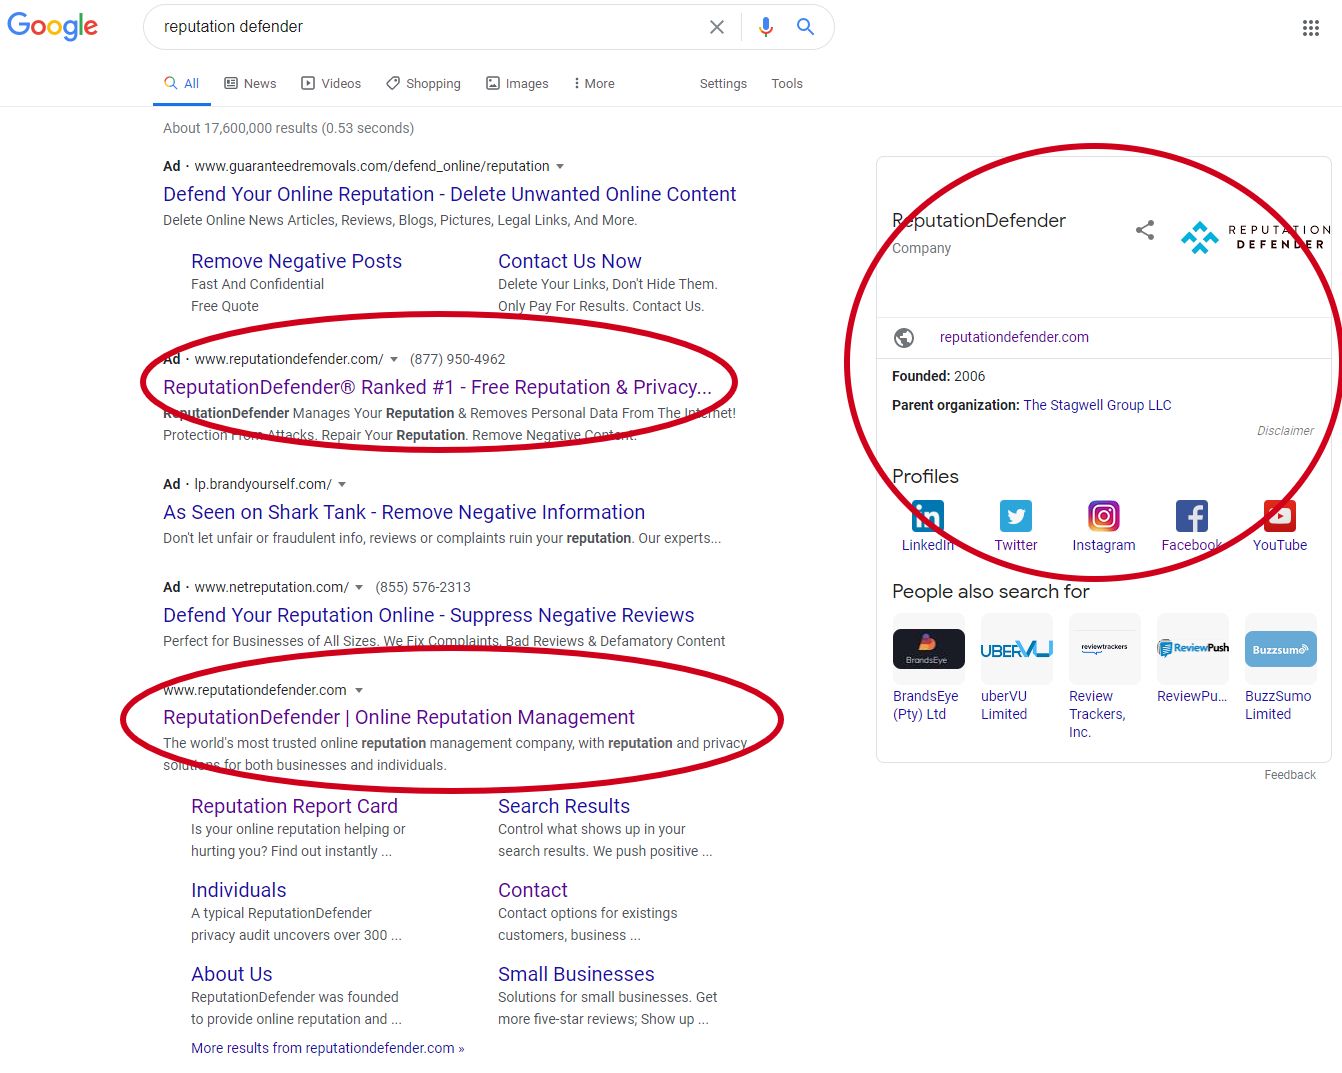 Screen shot of ReputationDefender's search results.